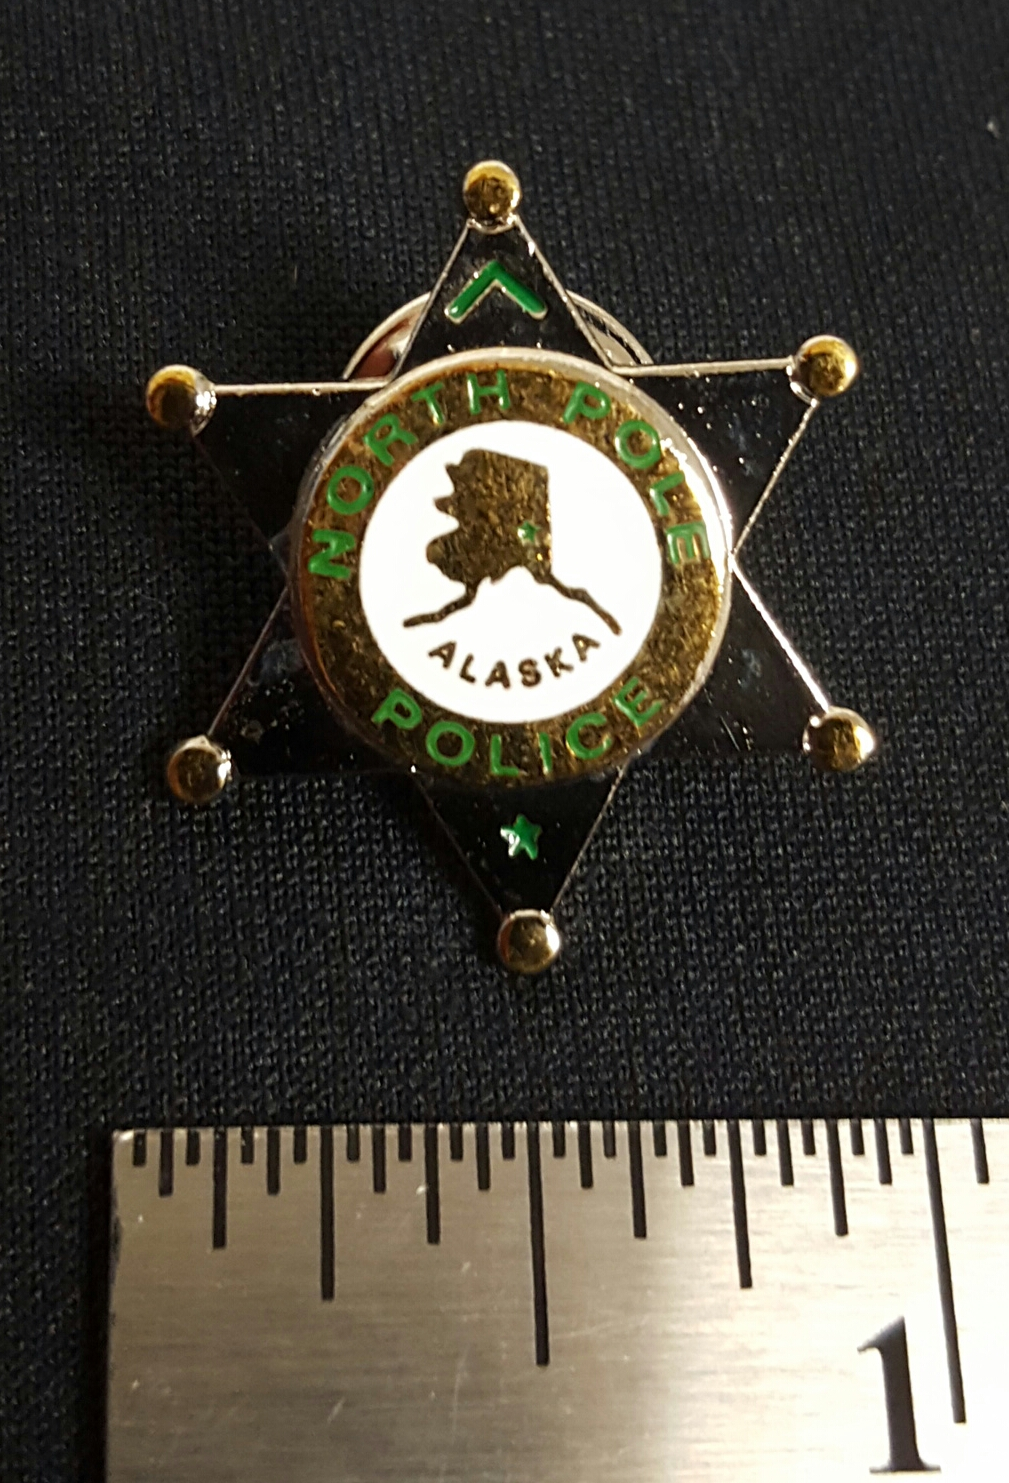 North Pole Police Department Lapel Pins